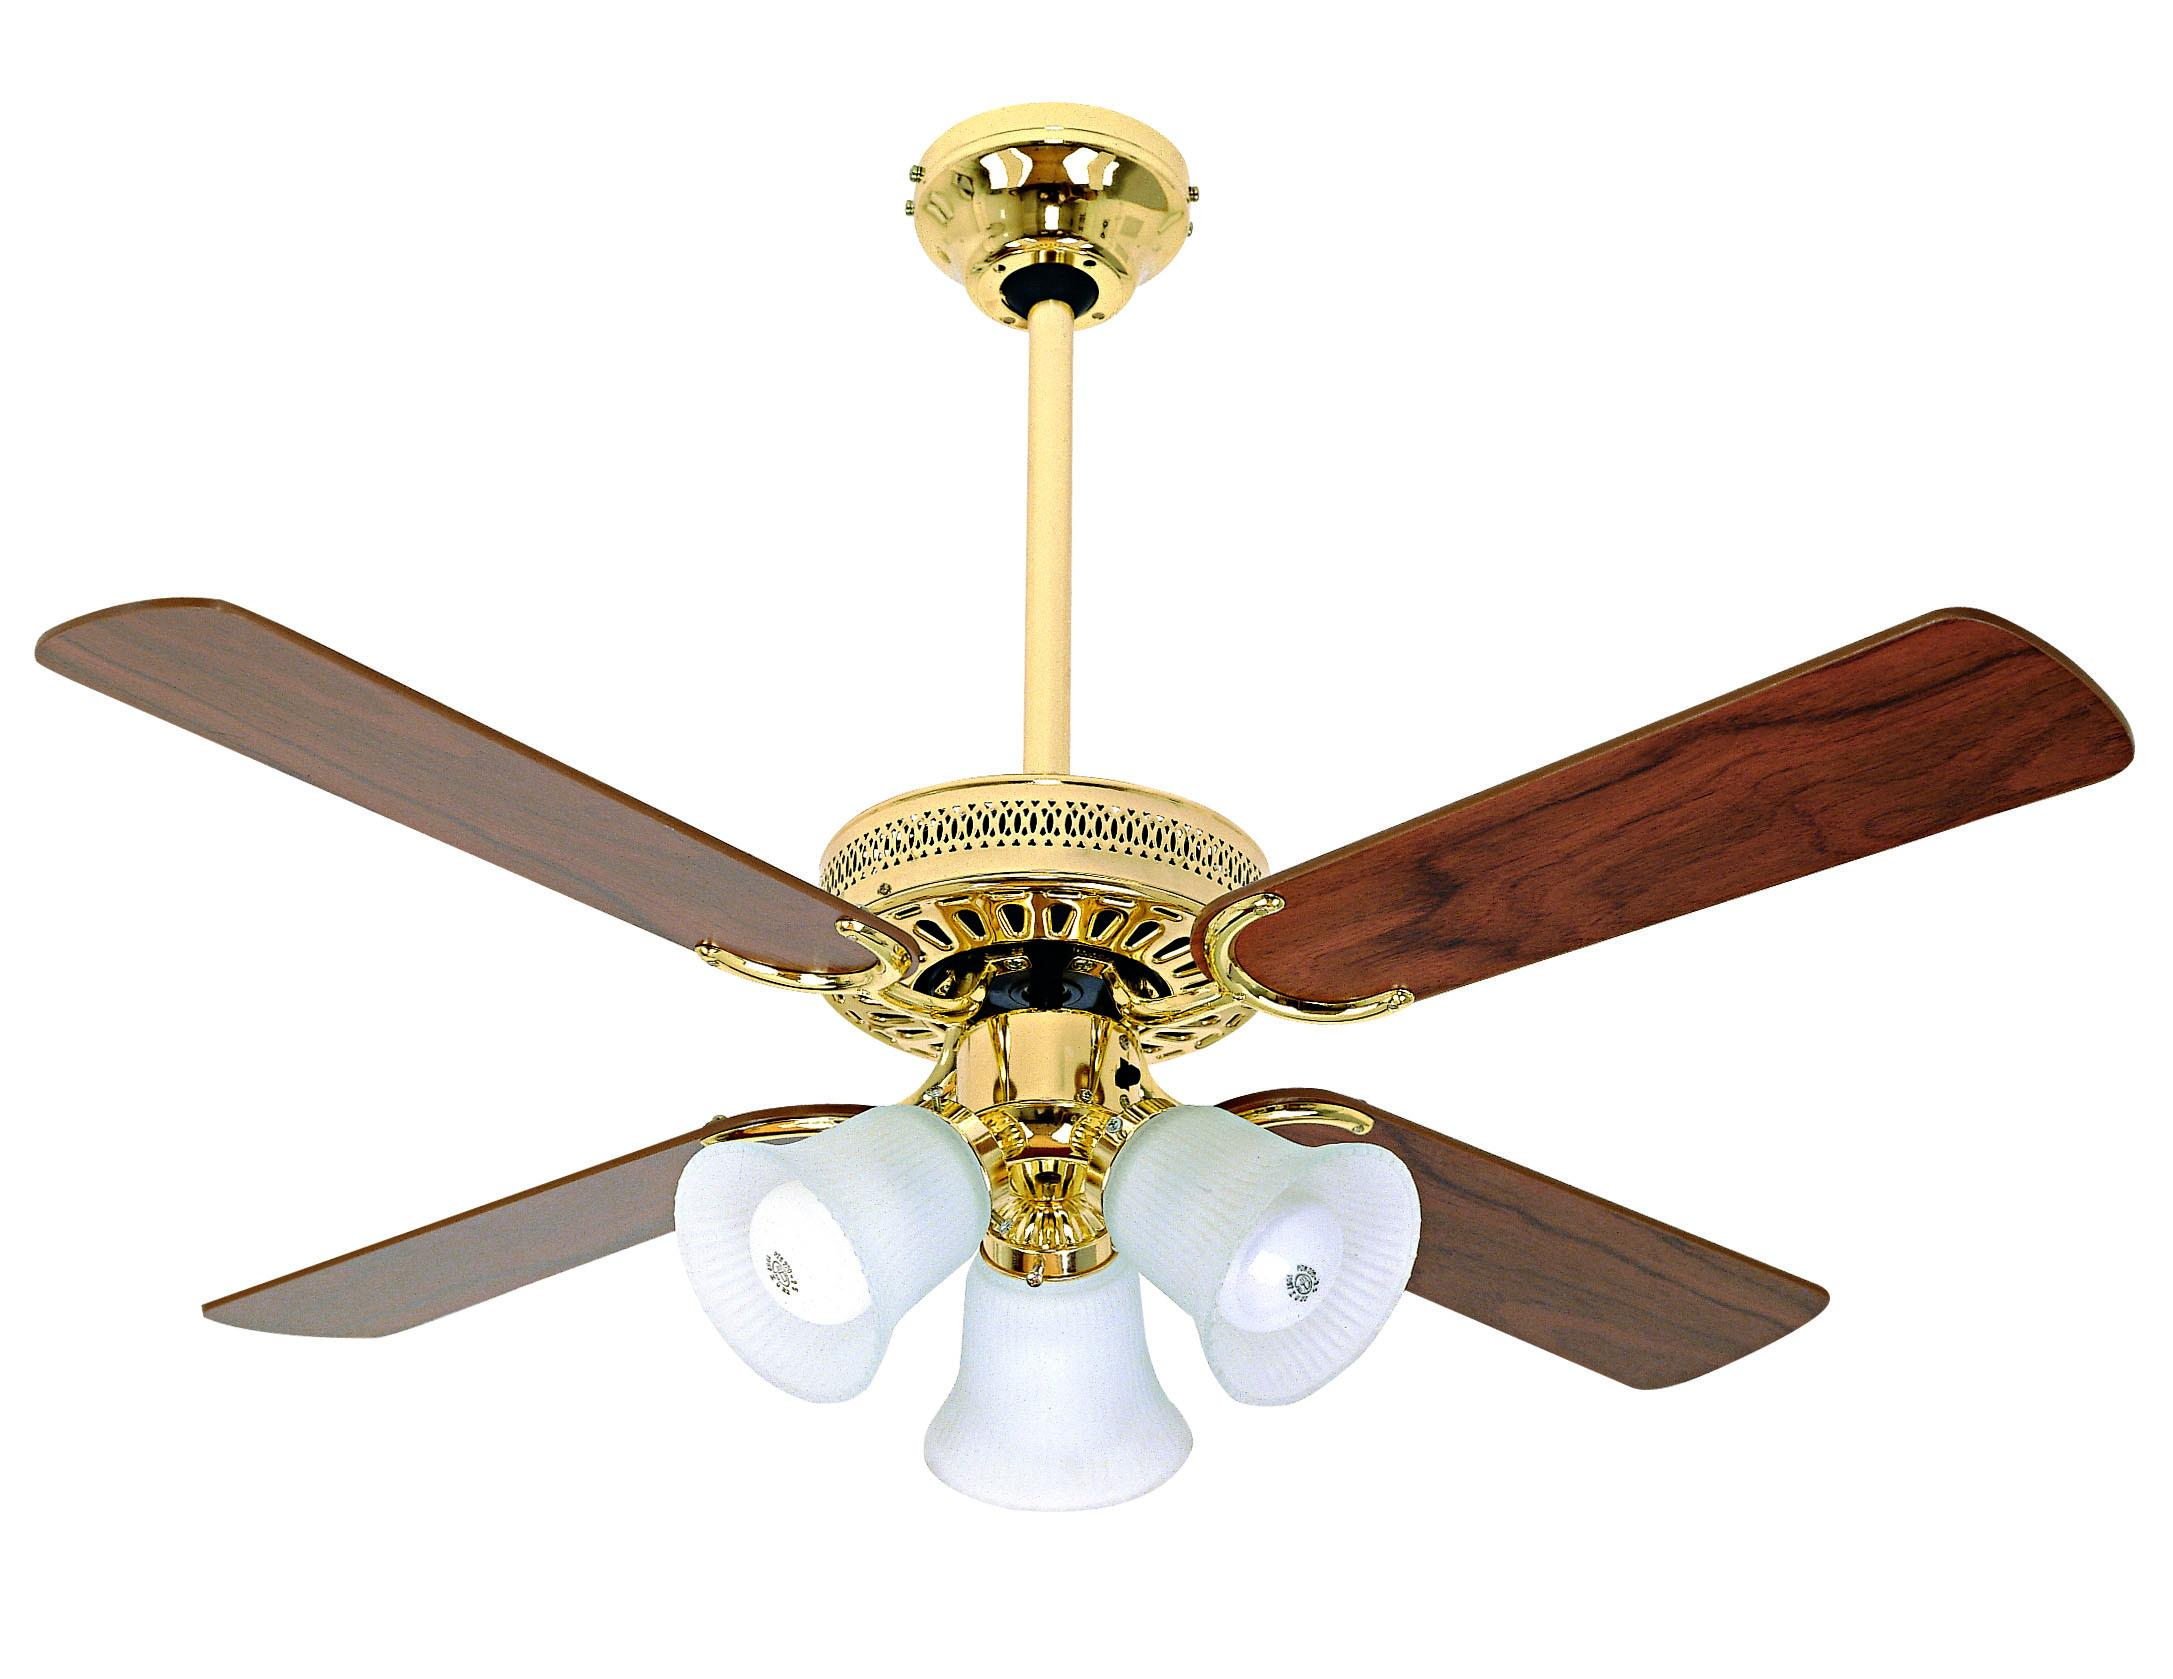 V-GUARD CEILING FANS, Reviews, Price, Rating, TV, MP3